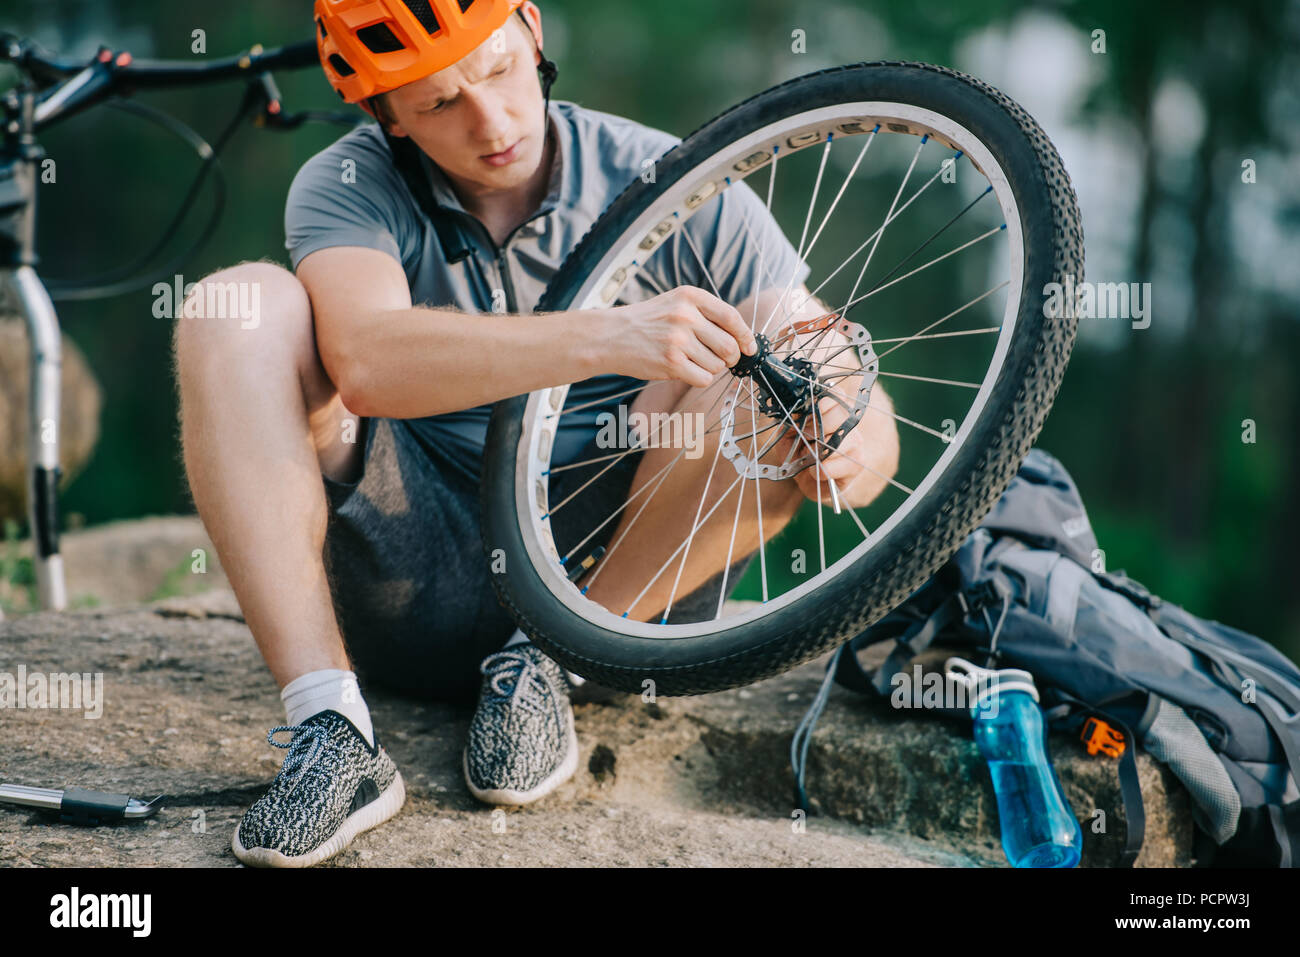 serious young trial biker fixing bicycle wheel outdoors while sitting on stone - Stock Image